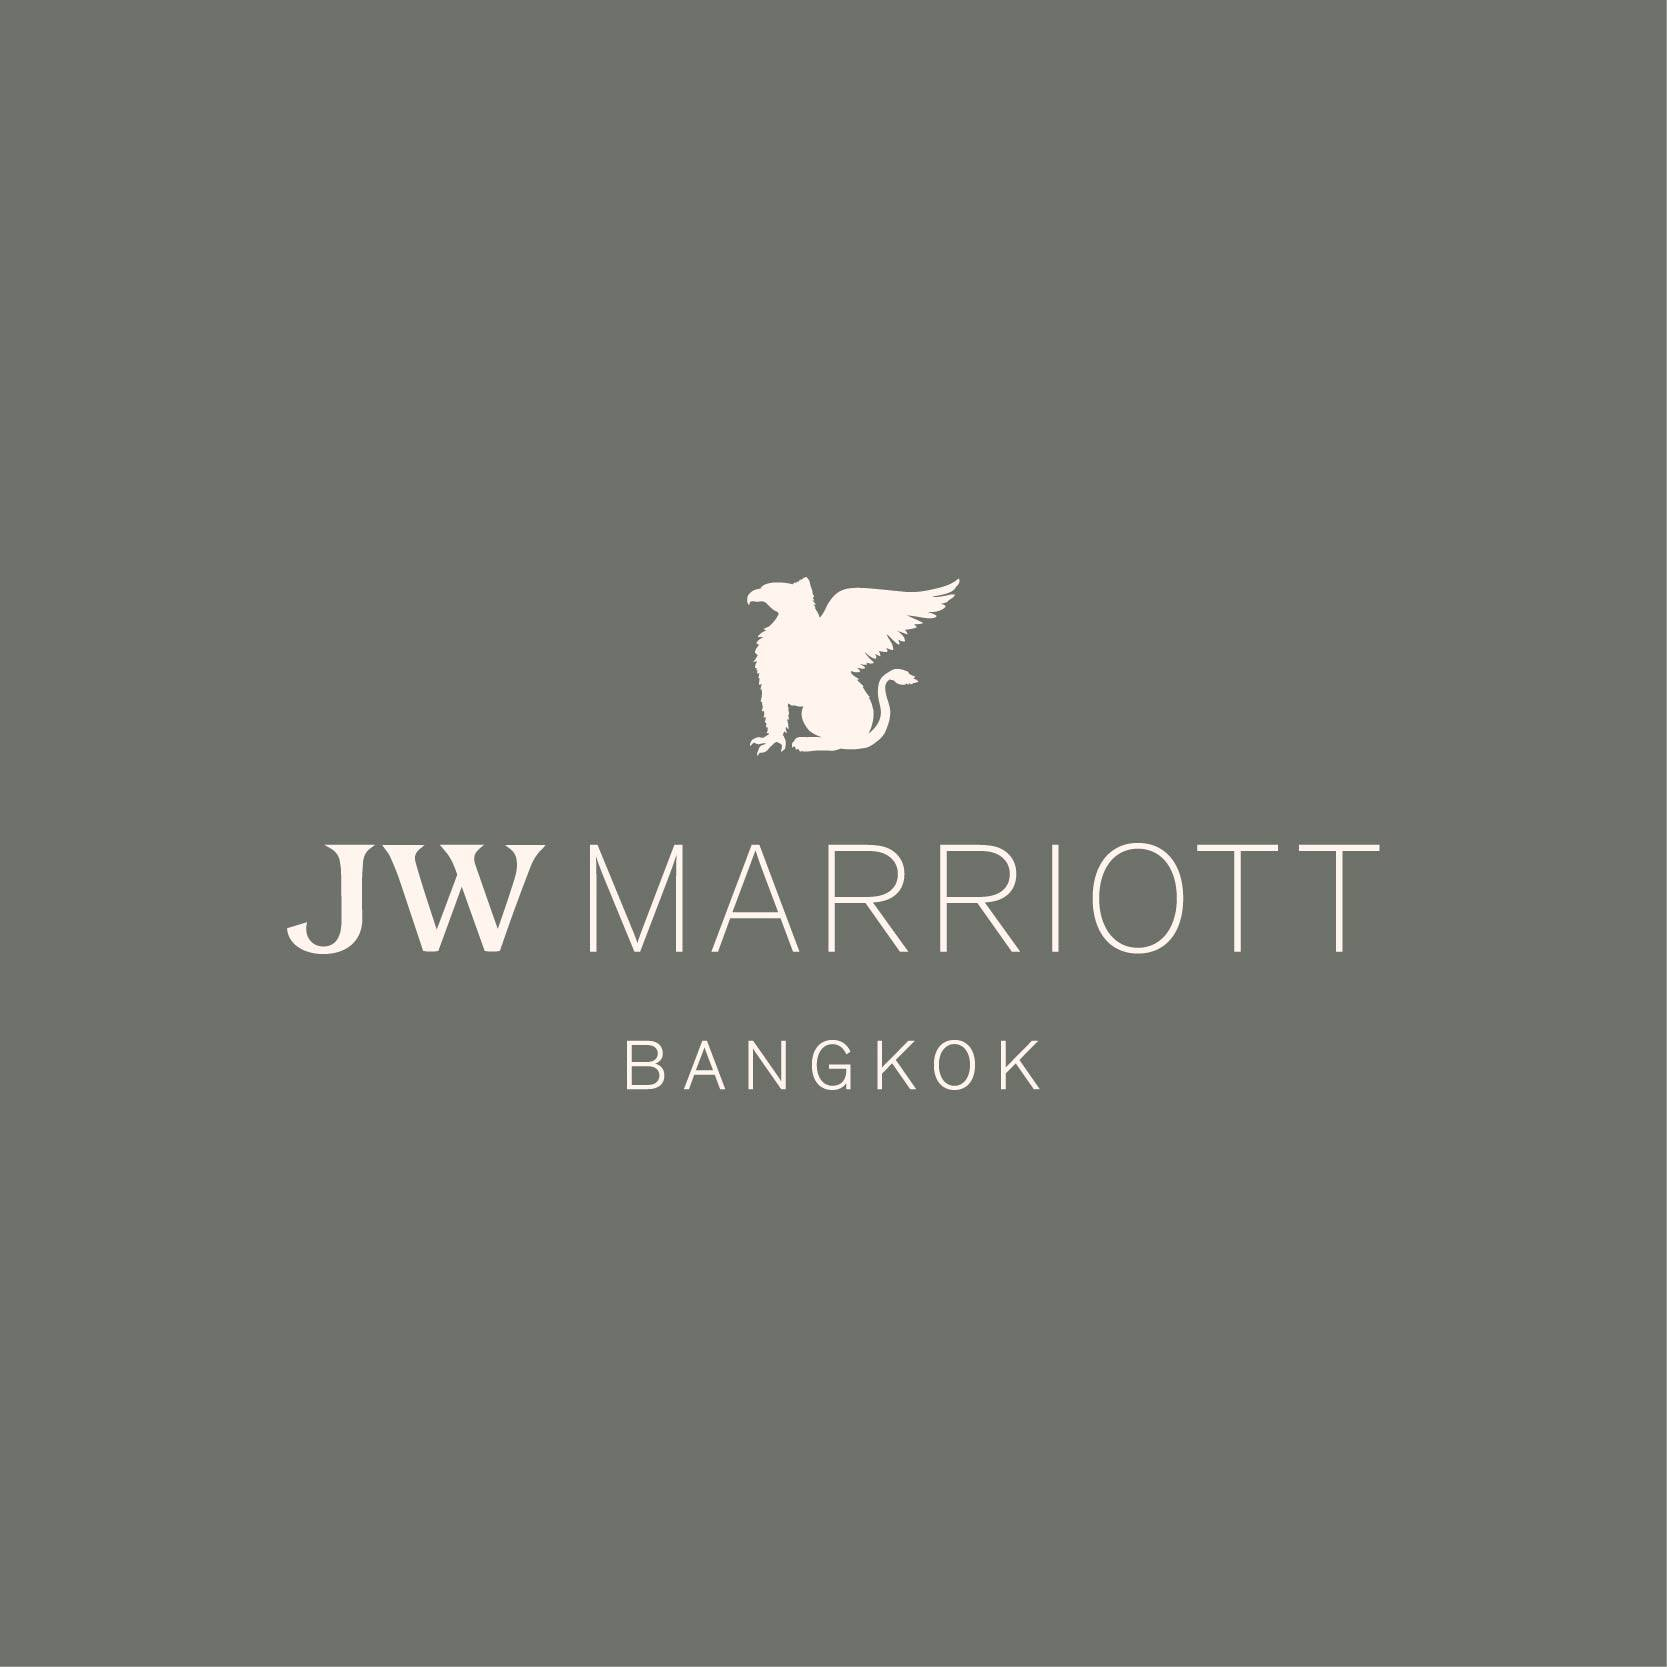 JW Marriott Hotel Bangkok